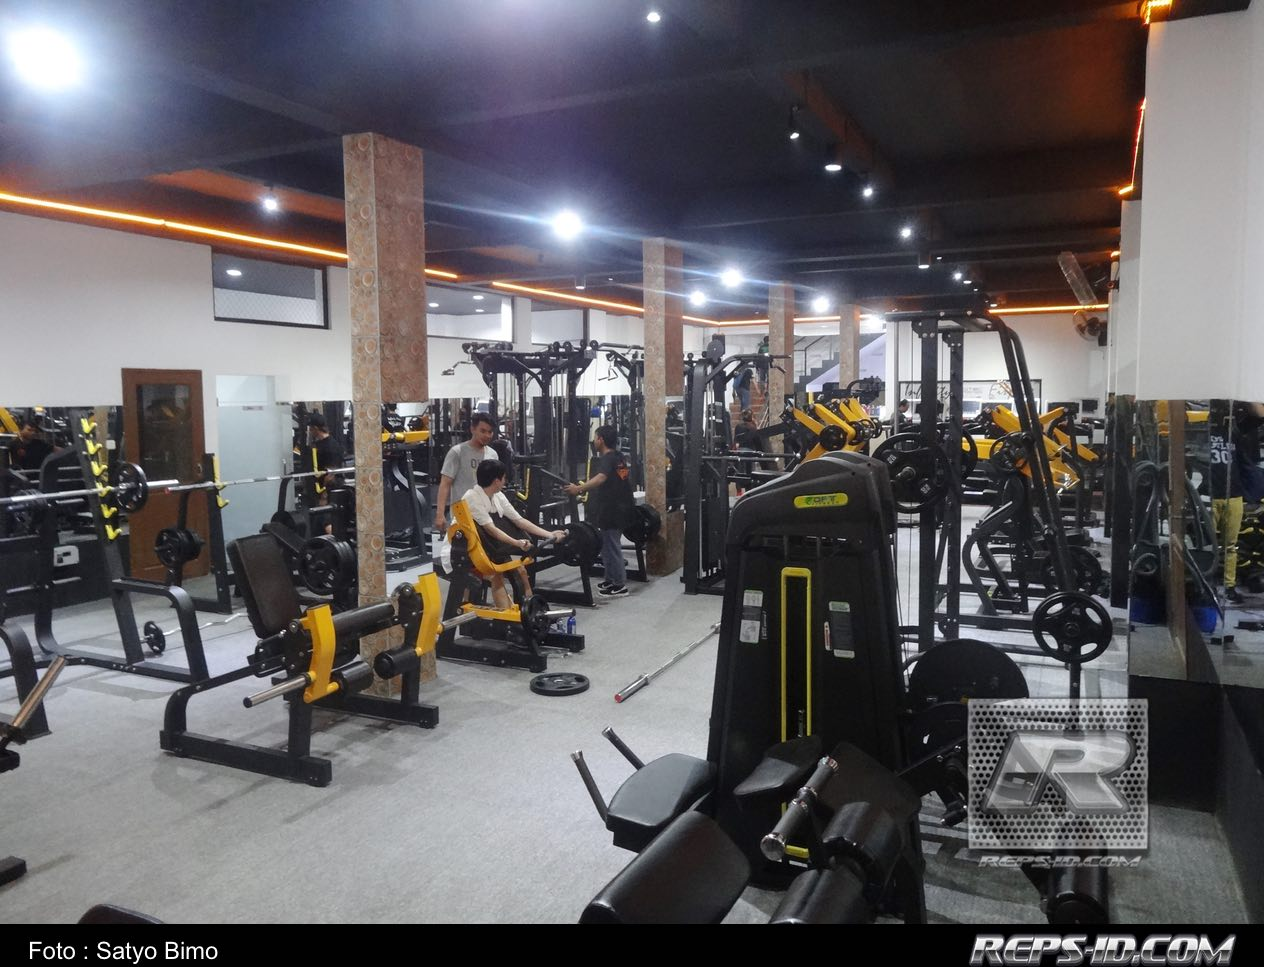 Infinity fitness reps indonesia fitness & healthy lifestyle